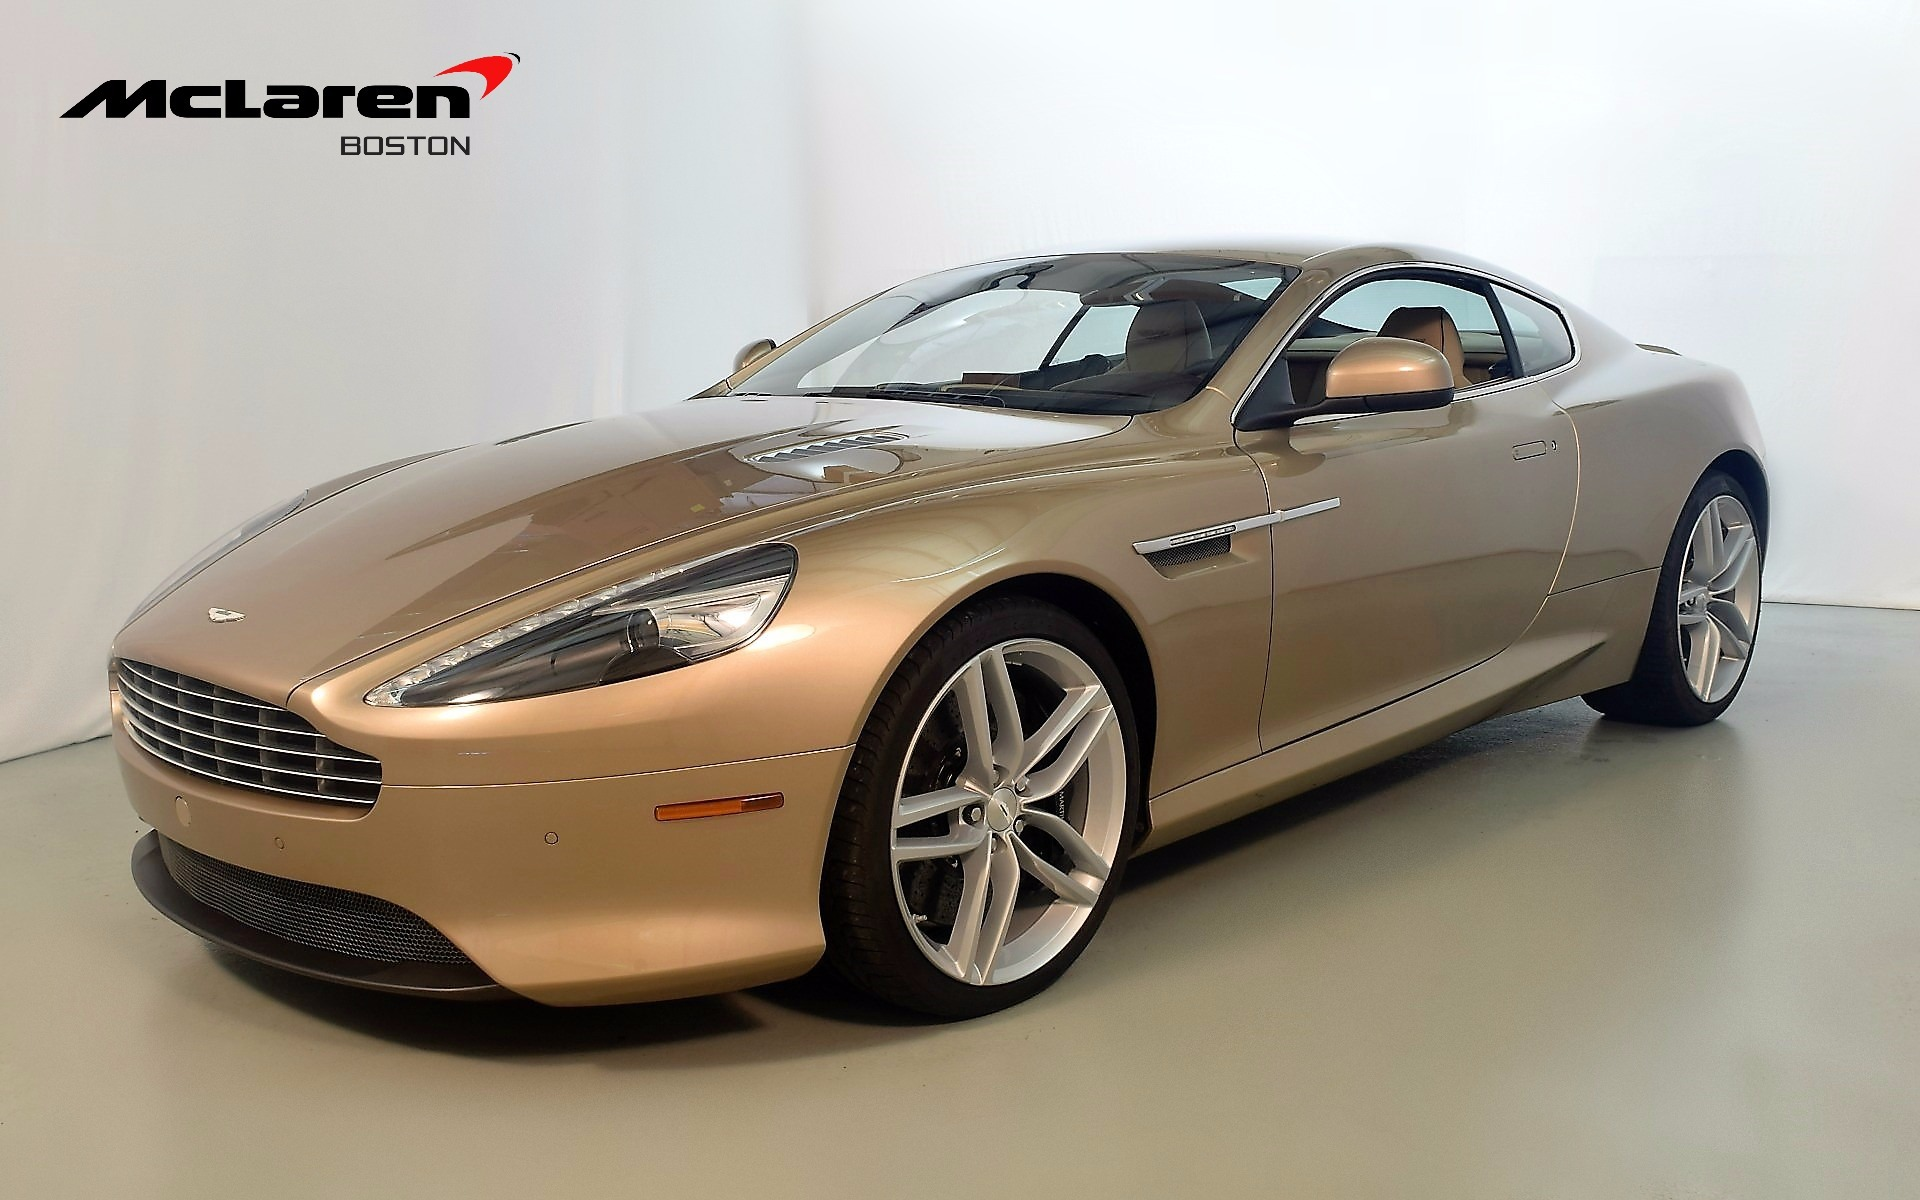 2013 aston martin db9 for sale in norwell ma a14939 mclaren boston. Black Bedroom Furniture Sets. Home Design Ideas